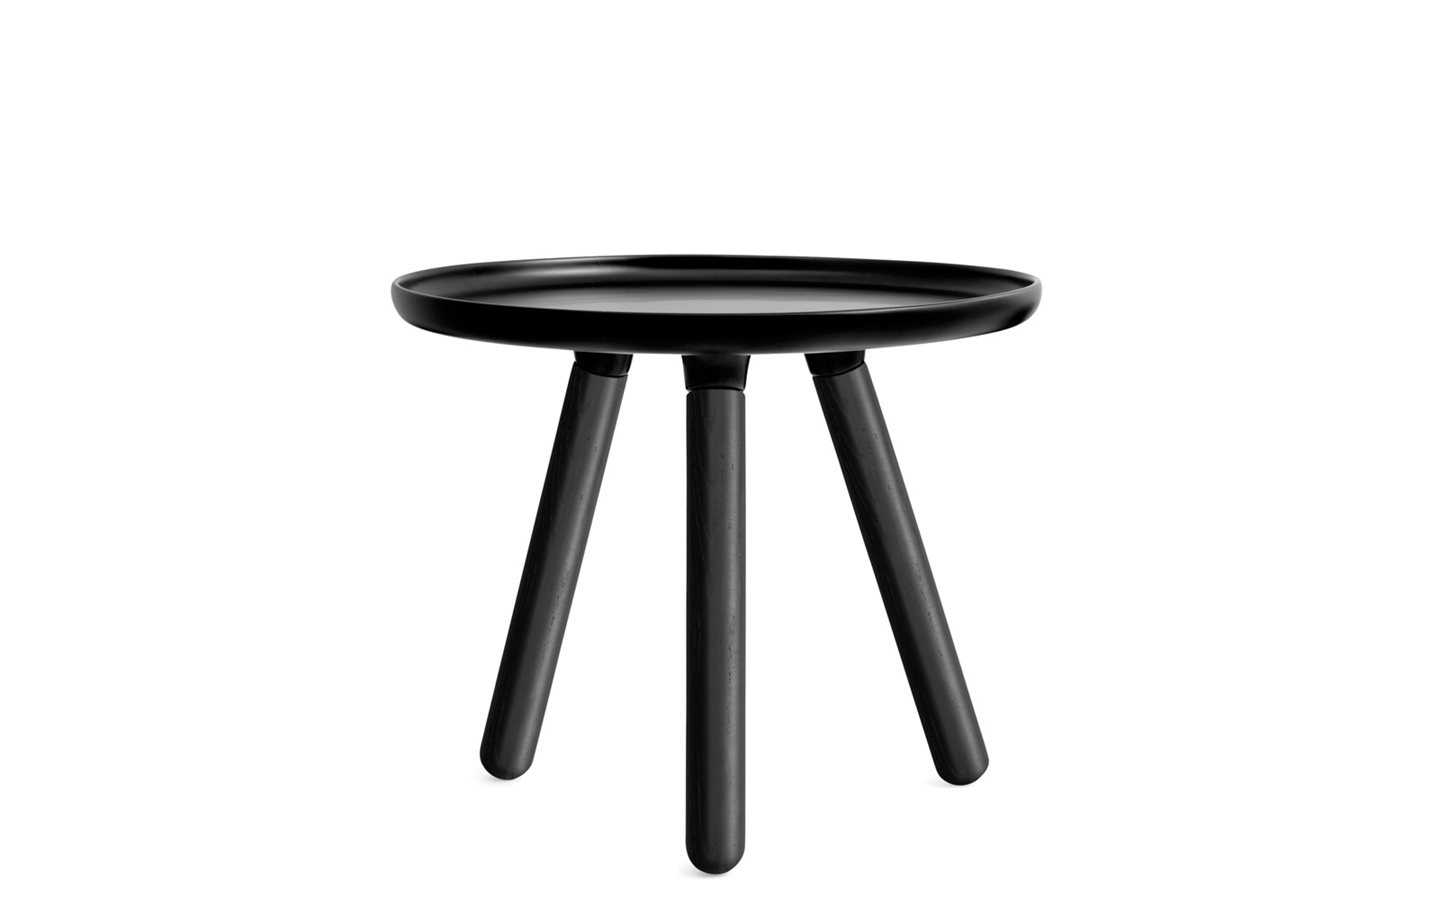 normann copenhagen tablo table. Black Bedroom Furniture Sets. Home Design Ideas